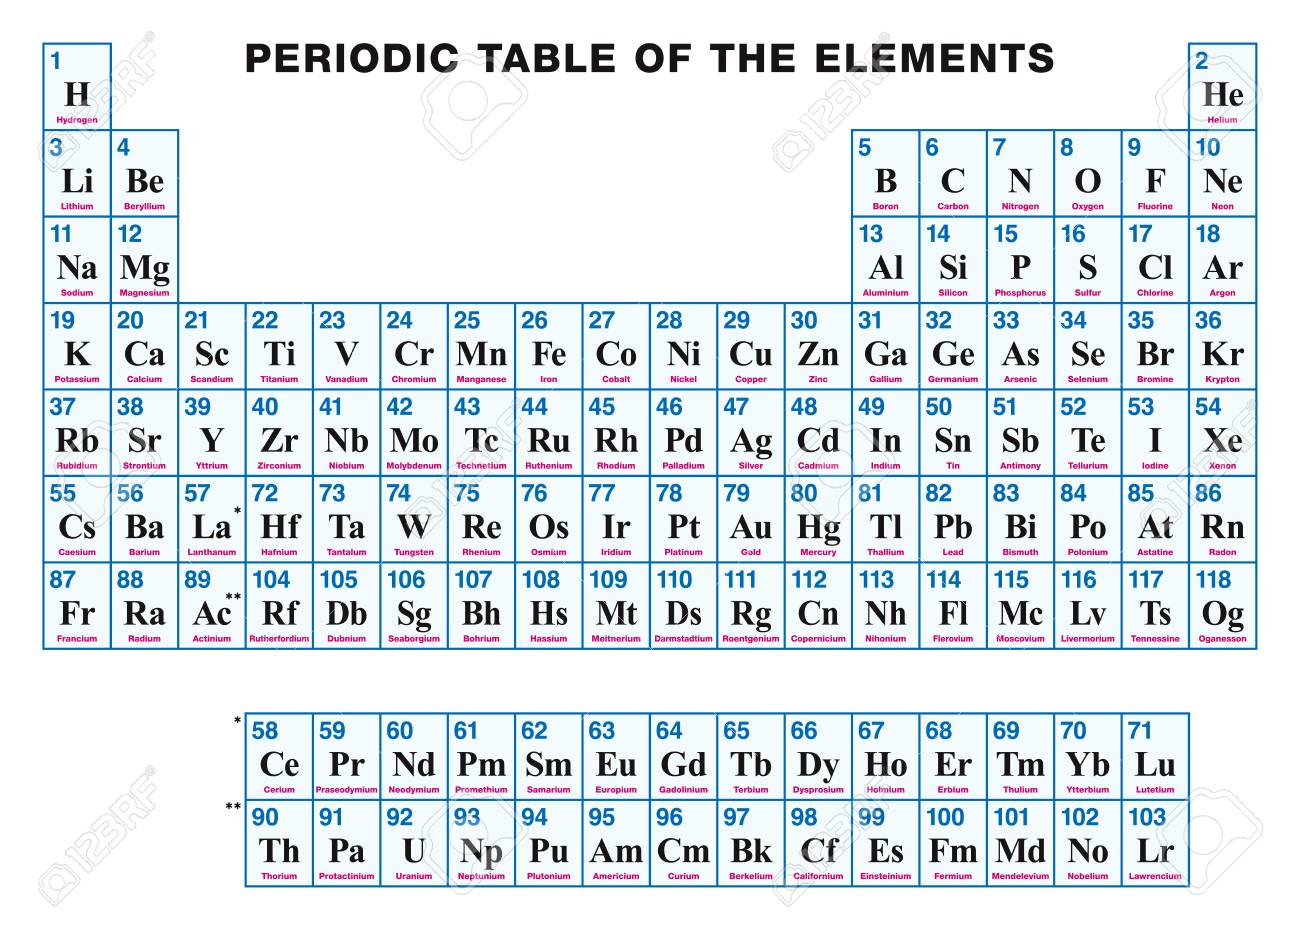 Chemicool periodic table gallery periodic table images chem reference table periodic table images periodic table images periodic table regents image collections periodic table gamestrikefo Image collections